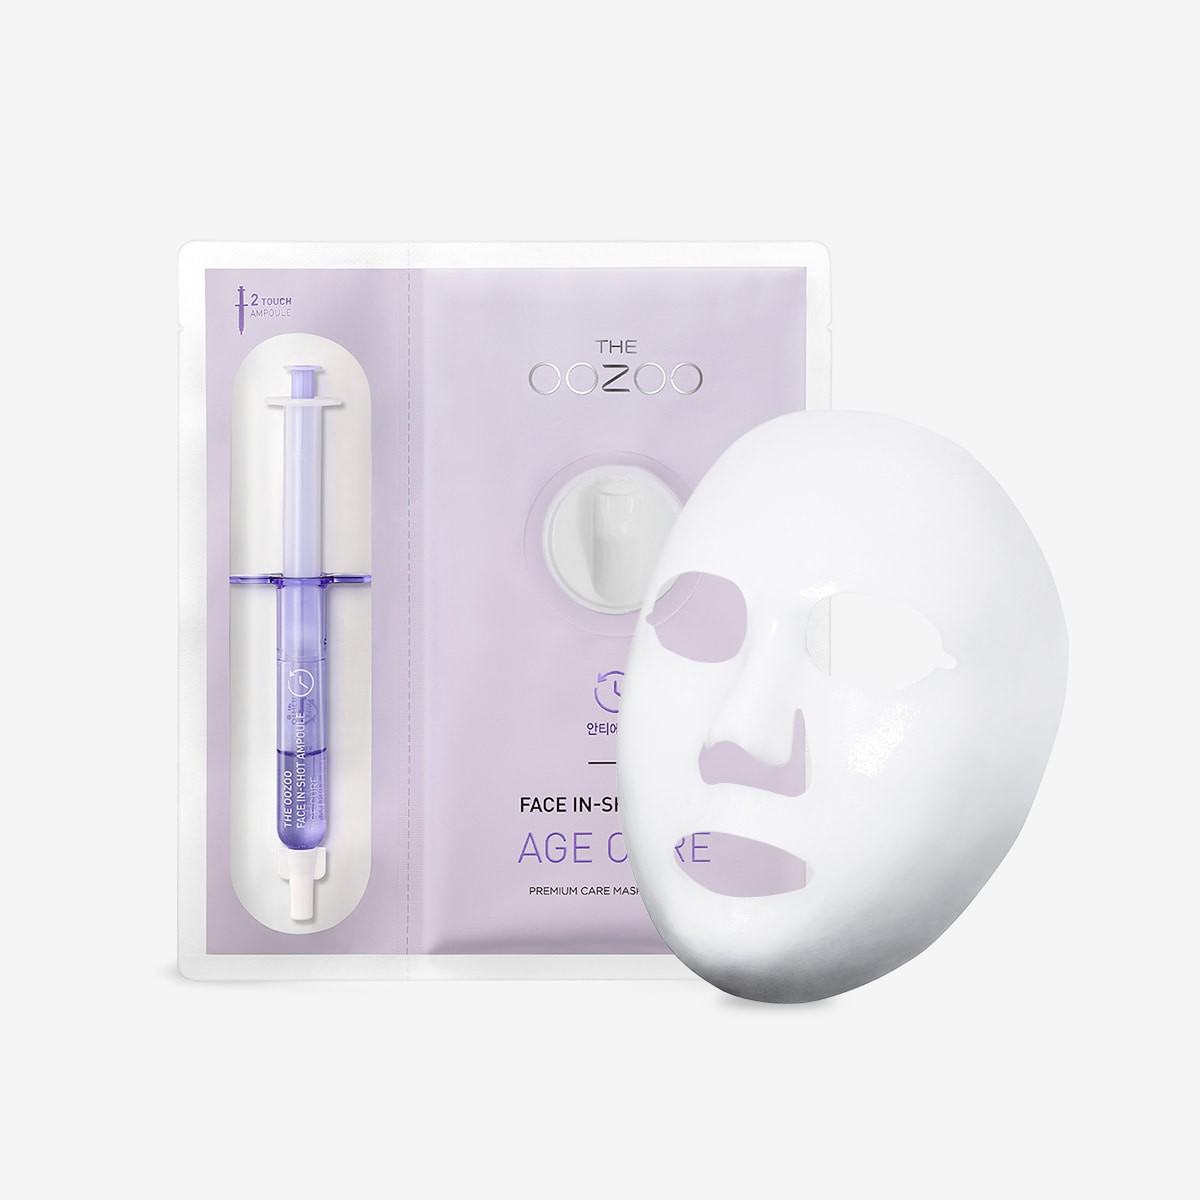 The Oozoo Face In-Shot Mask Age Care 2.8 ml